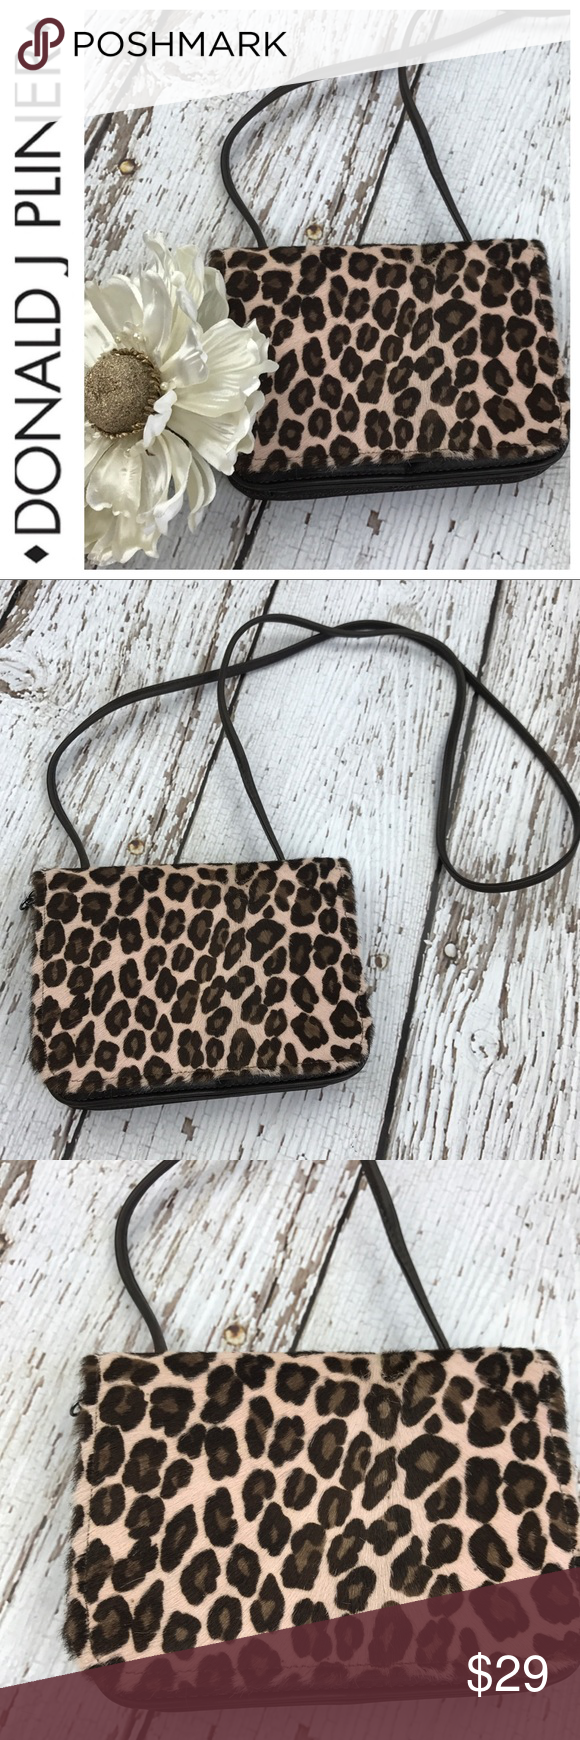 "💕SALE💕Donald J. Pliner Leopard Print Calf Hair Gorgeous 💕Donald J. Pliner Leopard Print Calf Hair Crossbody Bag with Mirror and inside Zippered compartment 7"" W x 5"" H Donald J. Pliner Bags Crossbody Bags"